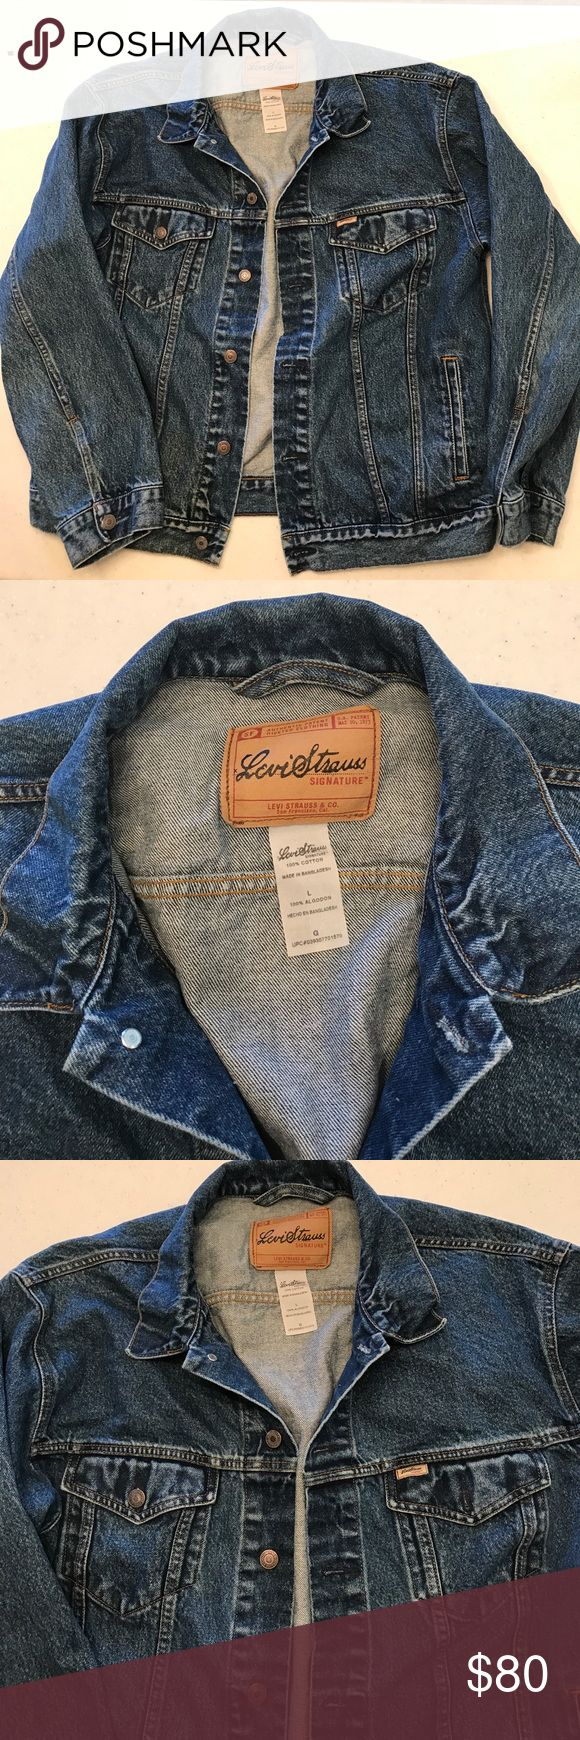 Vintage men's Levi Strauss Signature jean jacket Vintage men's Levi Strauss Signature jean jacket Signature by Levi Strauss Jackets & Coats